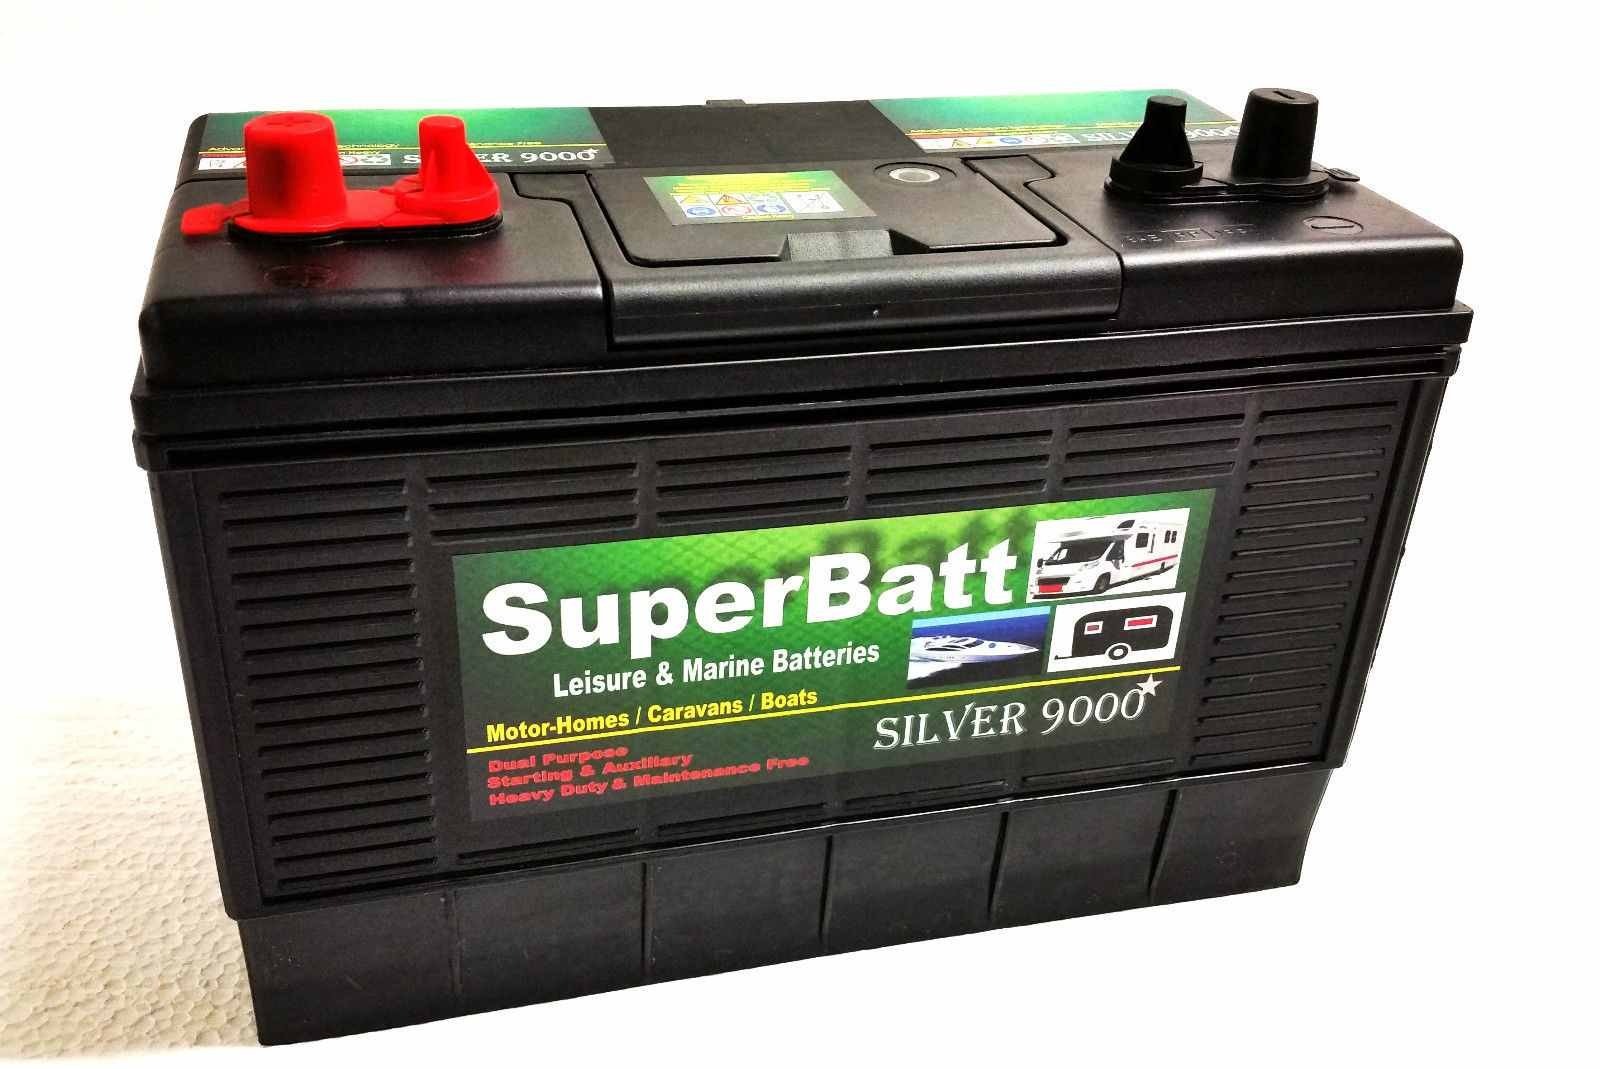 12V 120AH SuperBatt DT120 Heavy Duty Ultra Deep Cycle Dual Purpose Leisure Marine Battery with Dual Terminals (Twin Posts) & Charge Indicator Replace 105AH ; 110AH ; 115AH ; 120AH 1